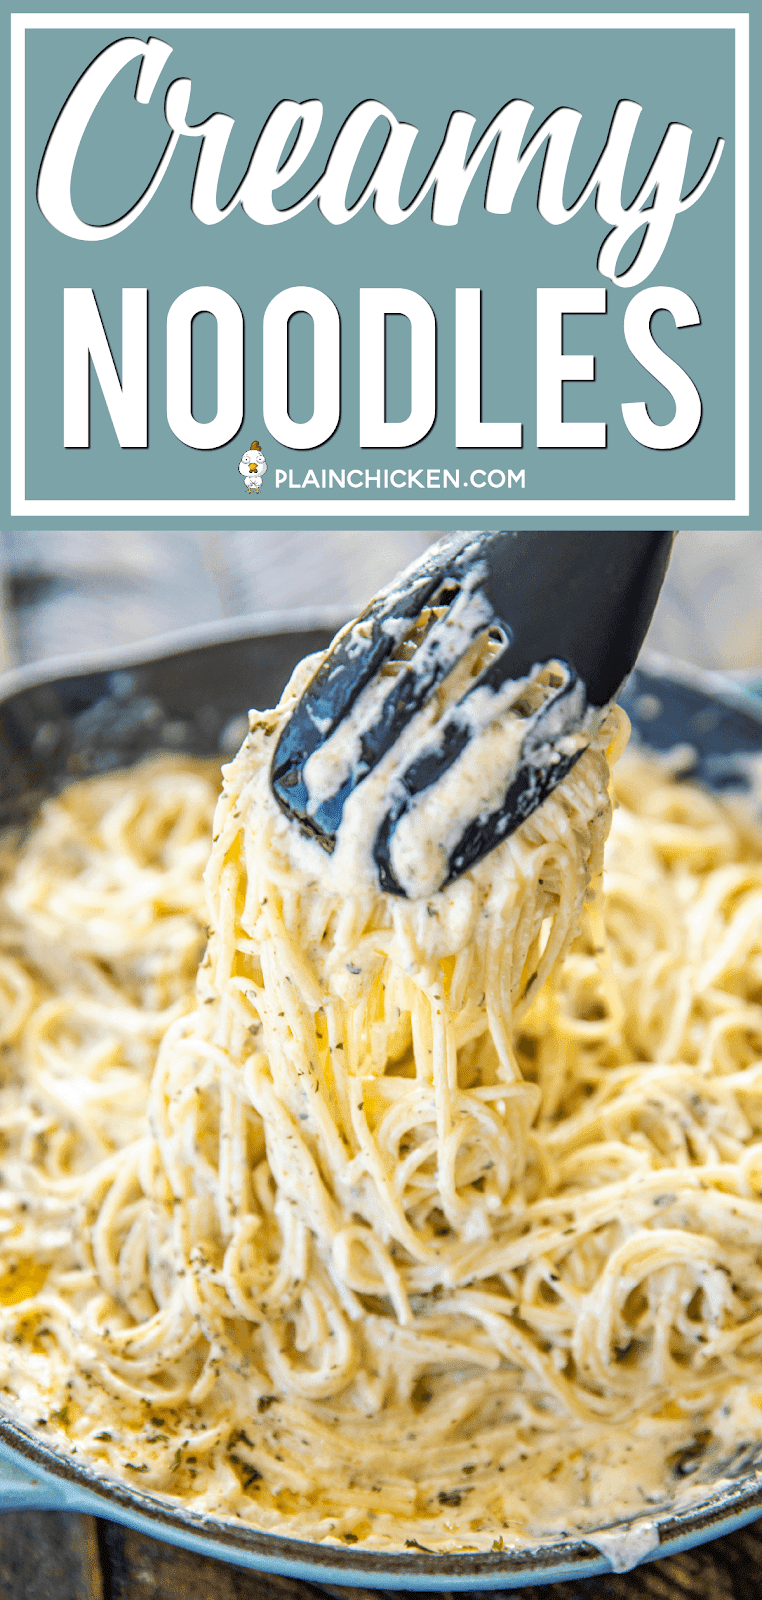 Creamy Noodles - a quick and easy side dish! Ready to eat in about 15 minutes! Spaghetti, cream cheese, milk, parmesan, garlic, butter, cajun seasoning, onion, and parsley. Goes with everything! Steak, chicken, pork. Great side dish or meatless main dish! #pasta #sidedish #creamcheeserecipes